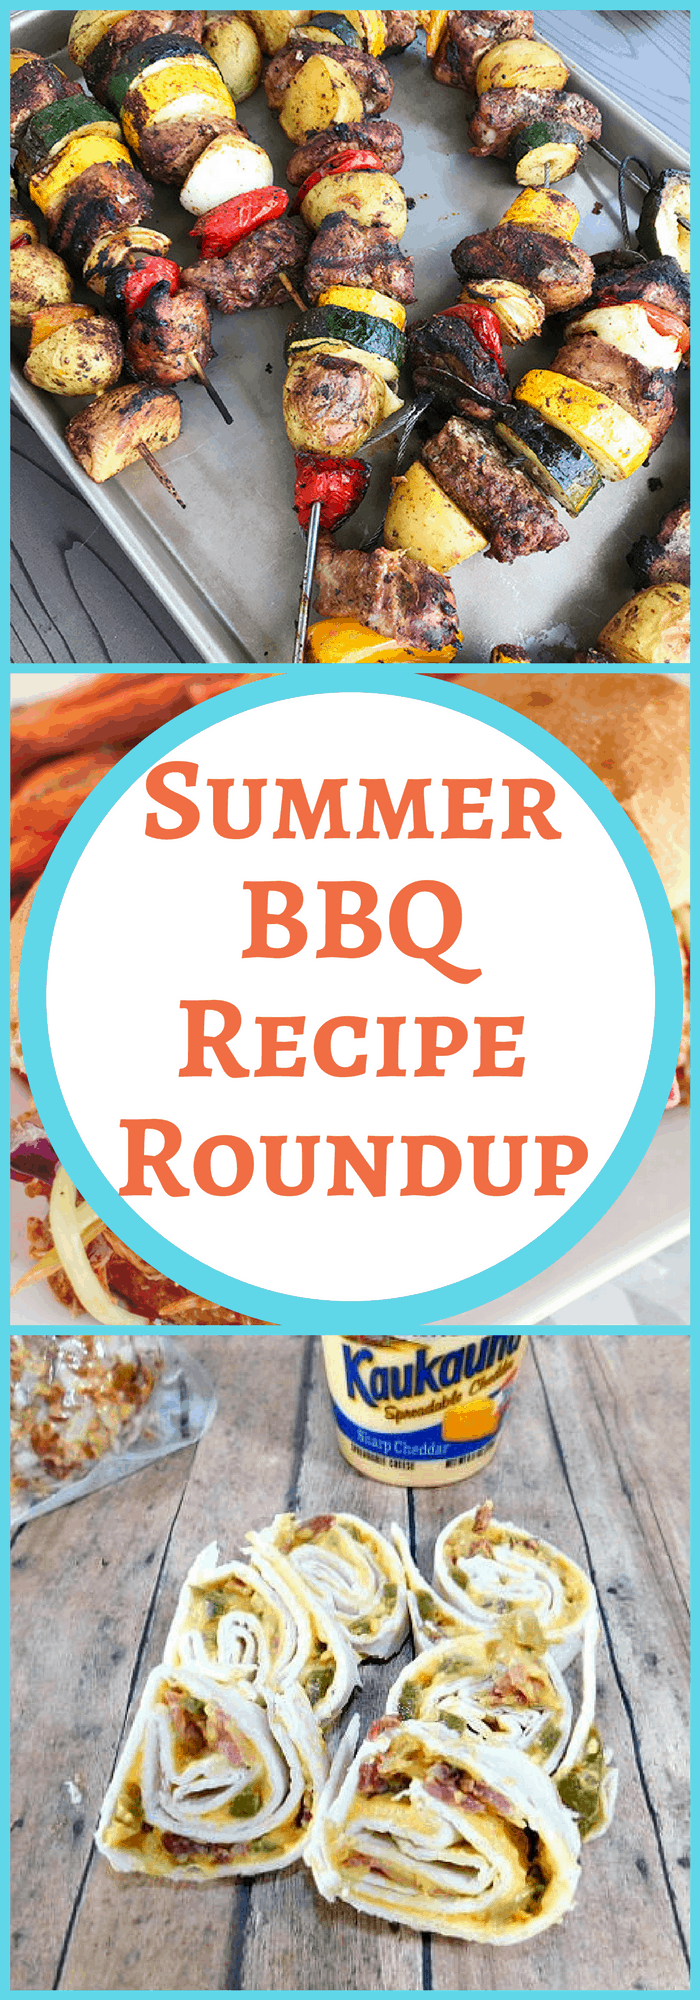 Recipes--Summer BBQ Recipe Roundup--The Organized Mom